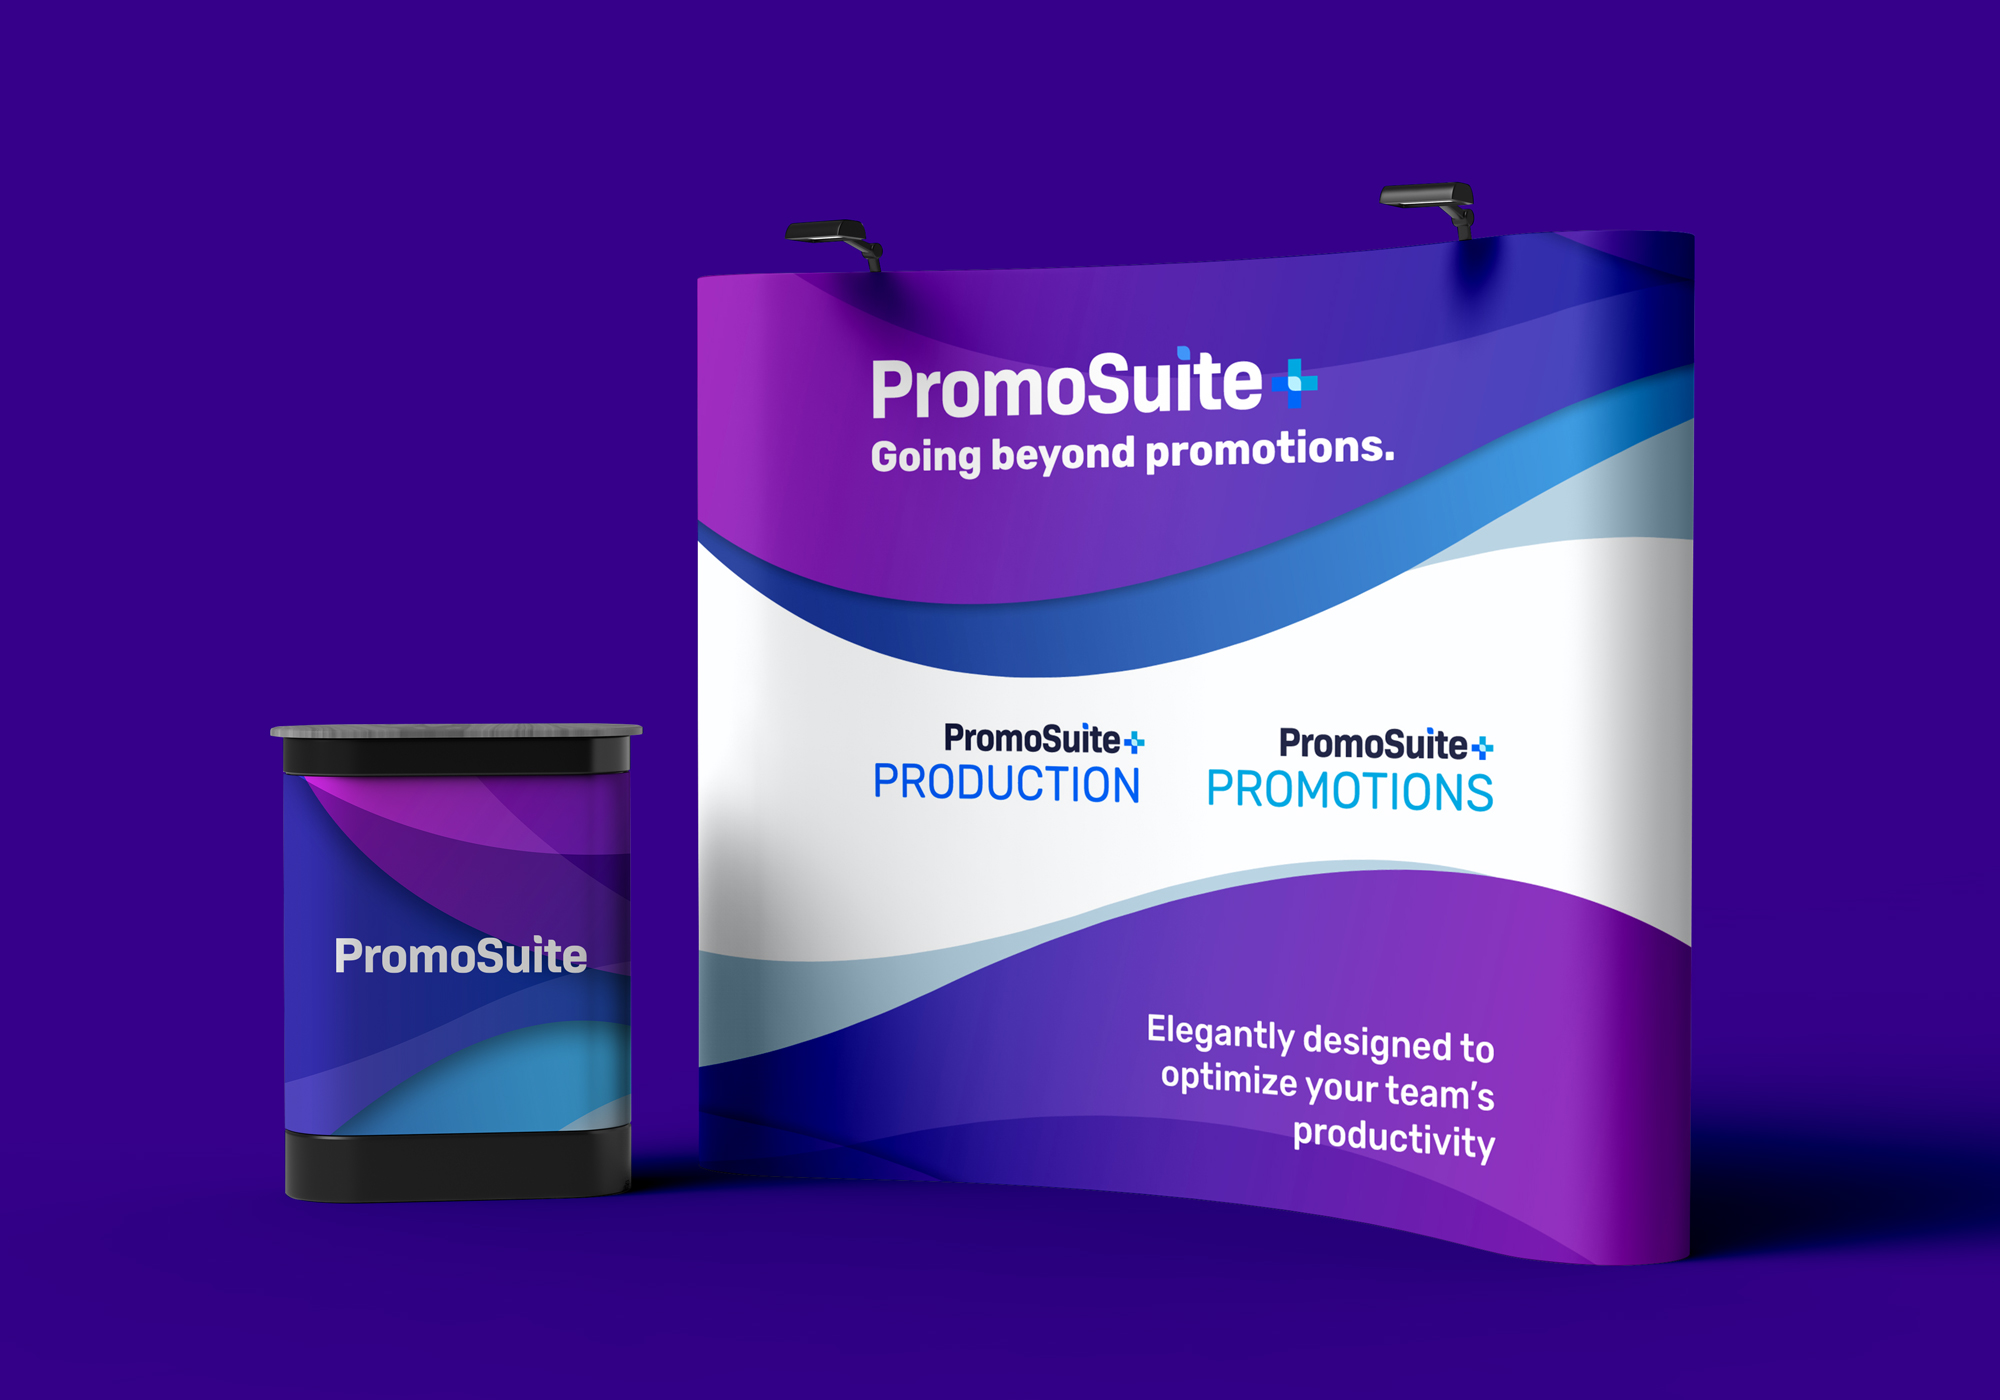 Promosuite Booth